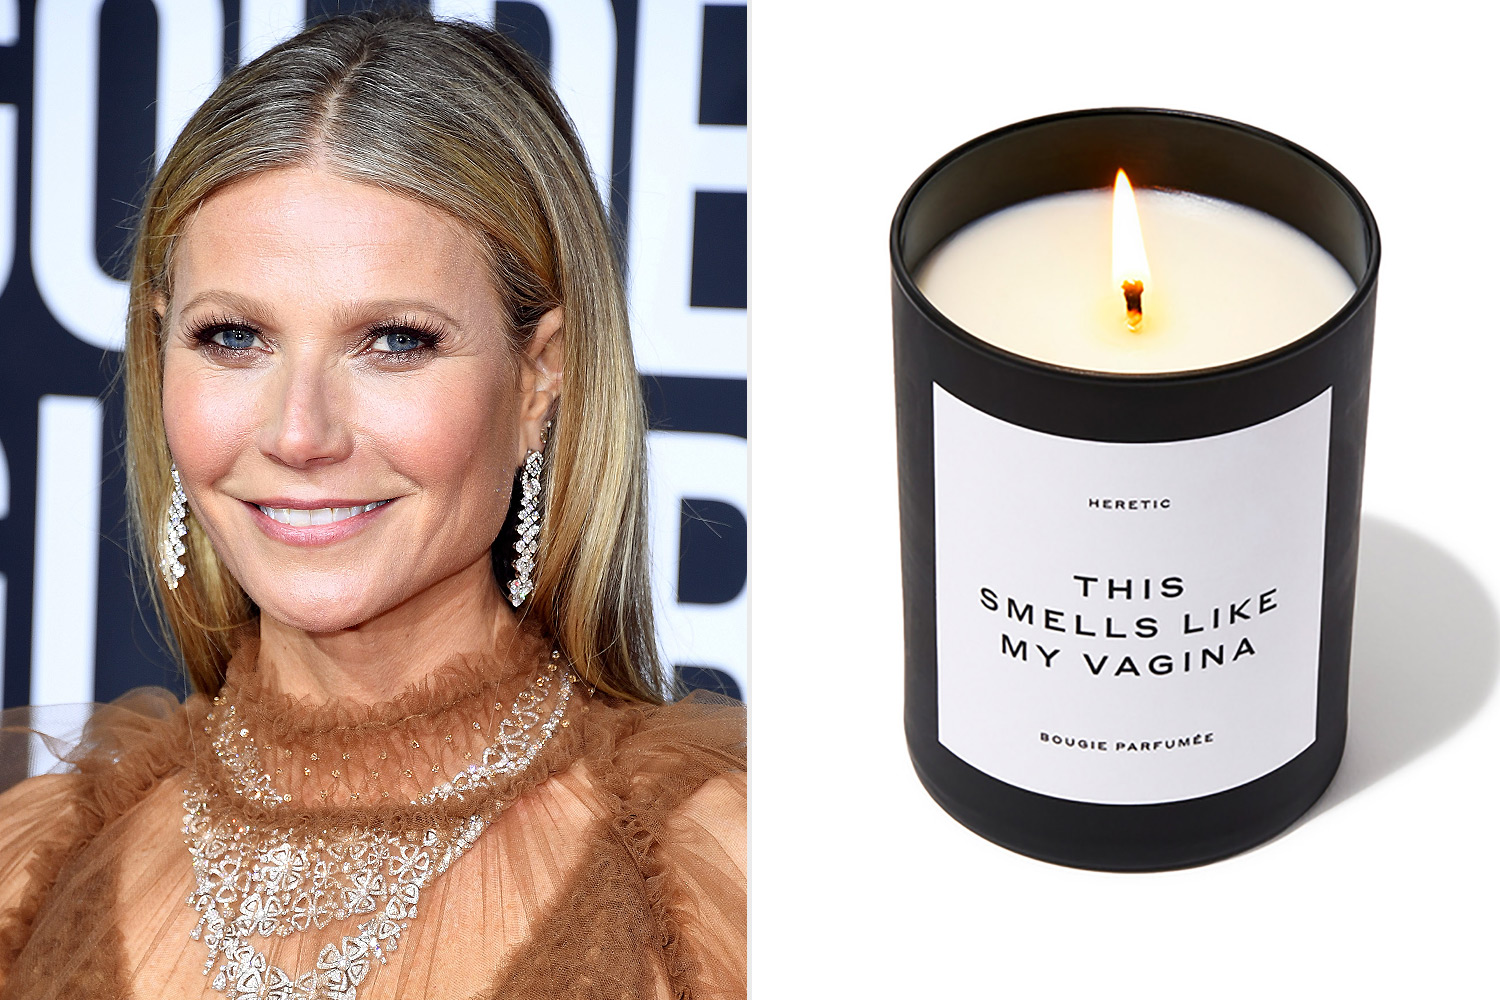 La bougie lancée par Gwyneth Paltrow @People